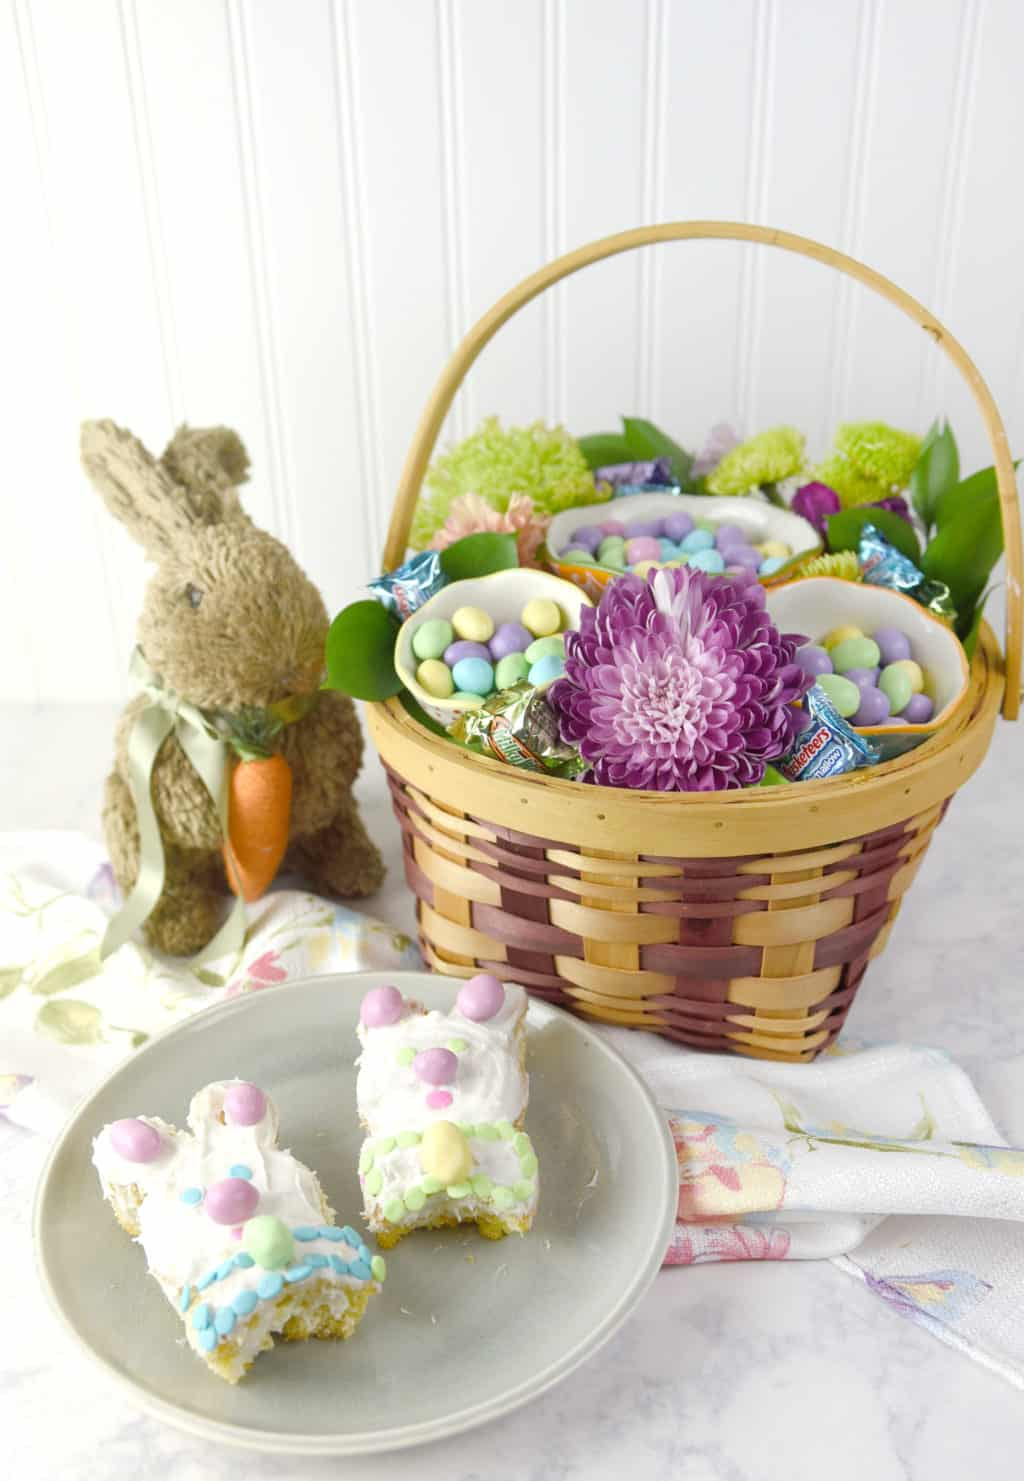 Bunny Mini Cakes and Floral Candy Basket! Such fun Easter Ideas!